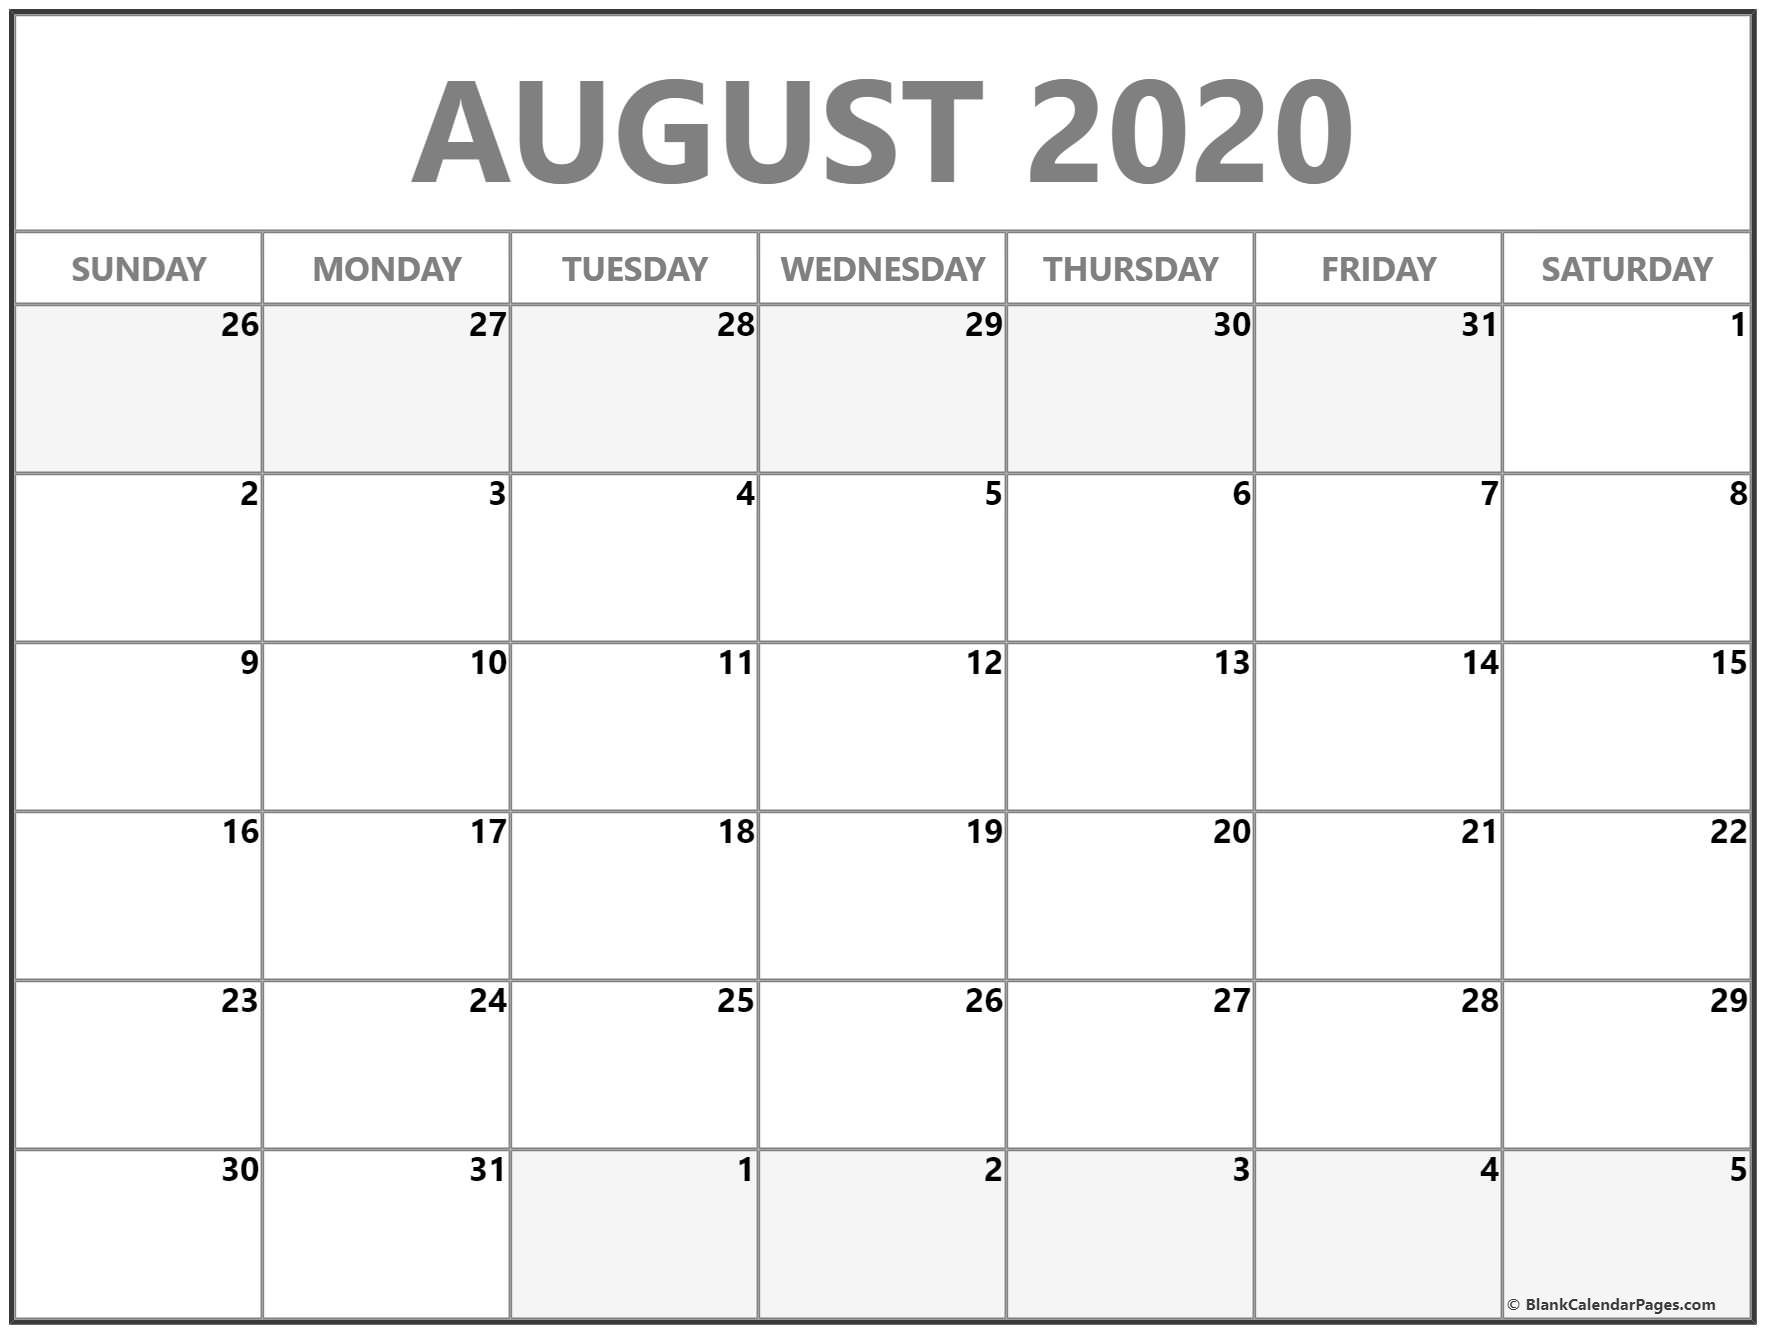 August 2020 Calendar | Free Printable Monthly Calendars-2020 Monthly Calendar Template August Thru December